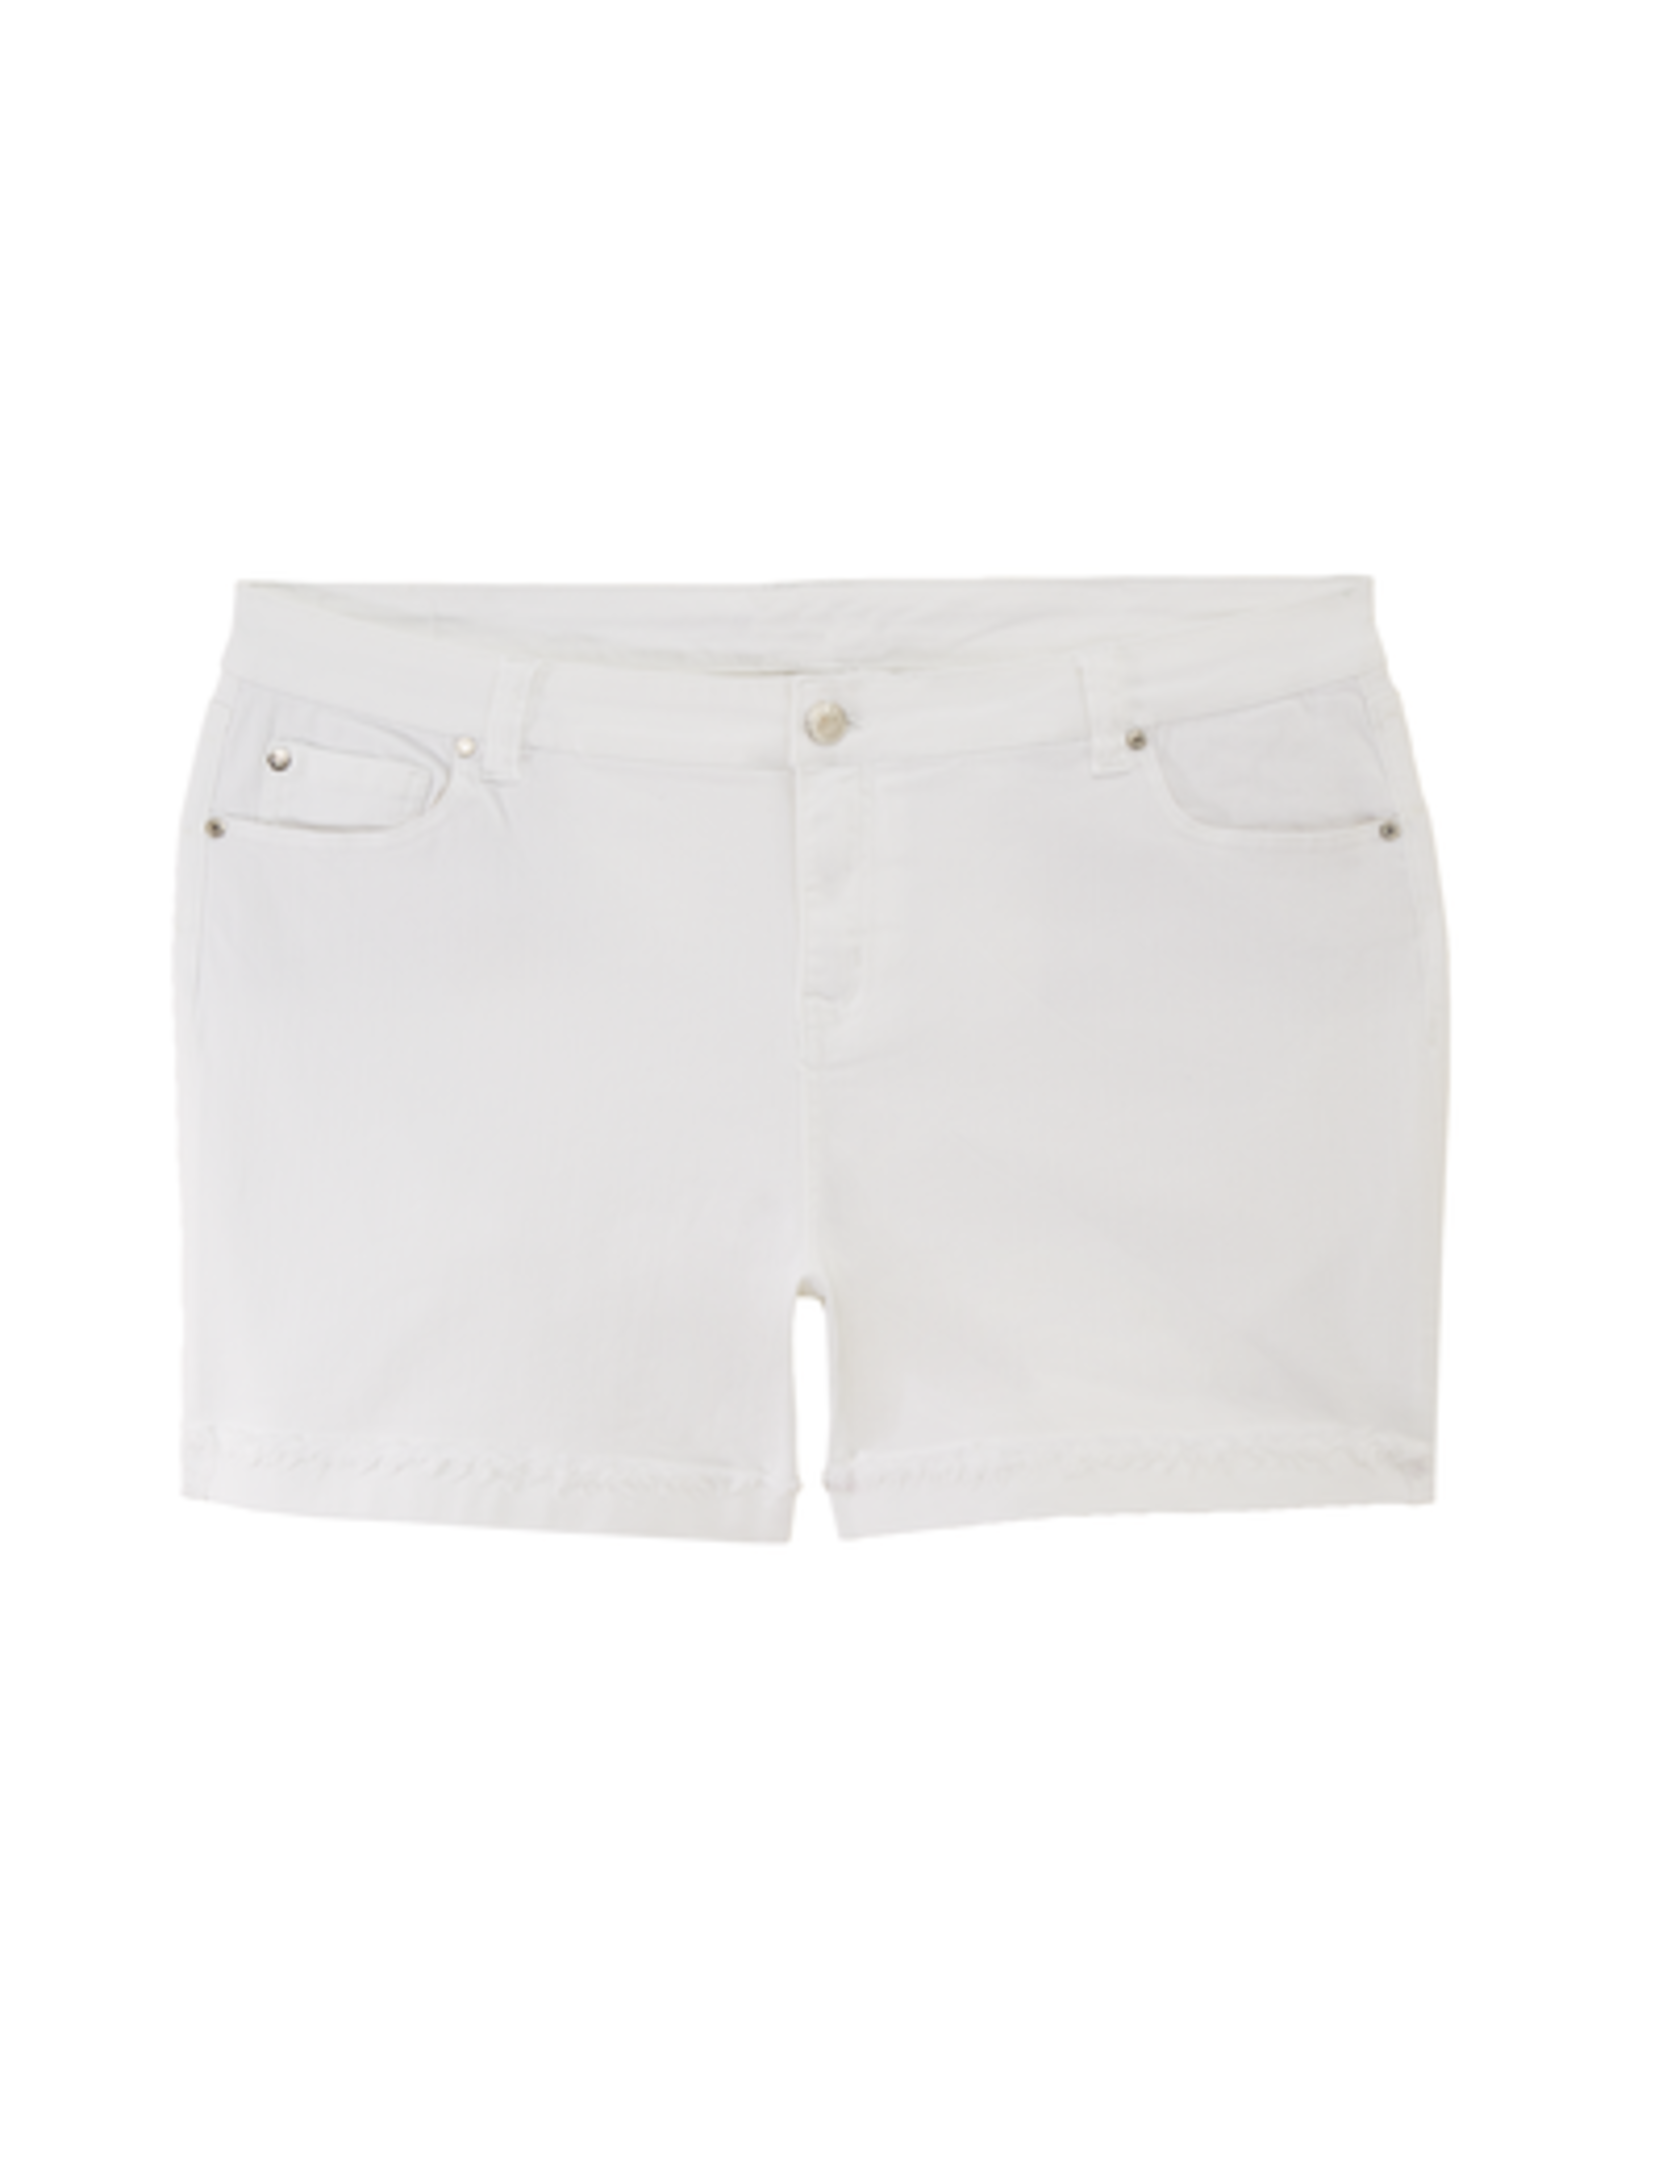 4th of july plus size white shorts